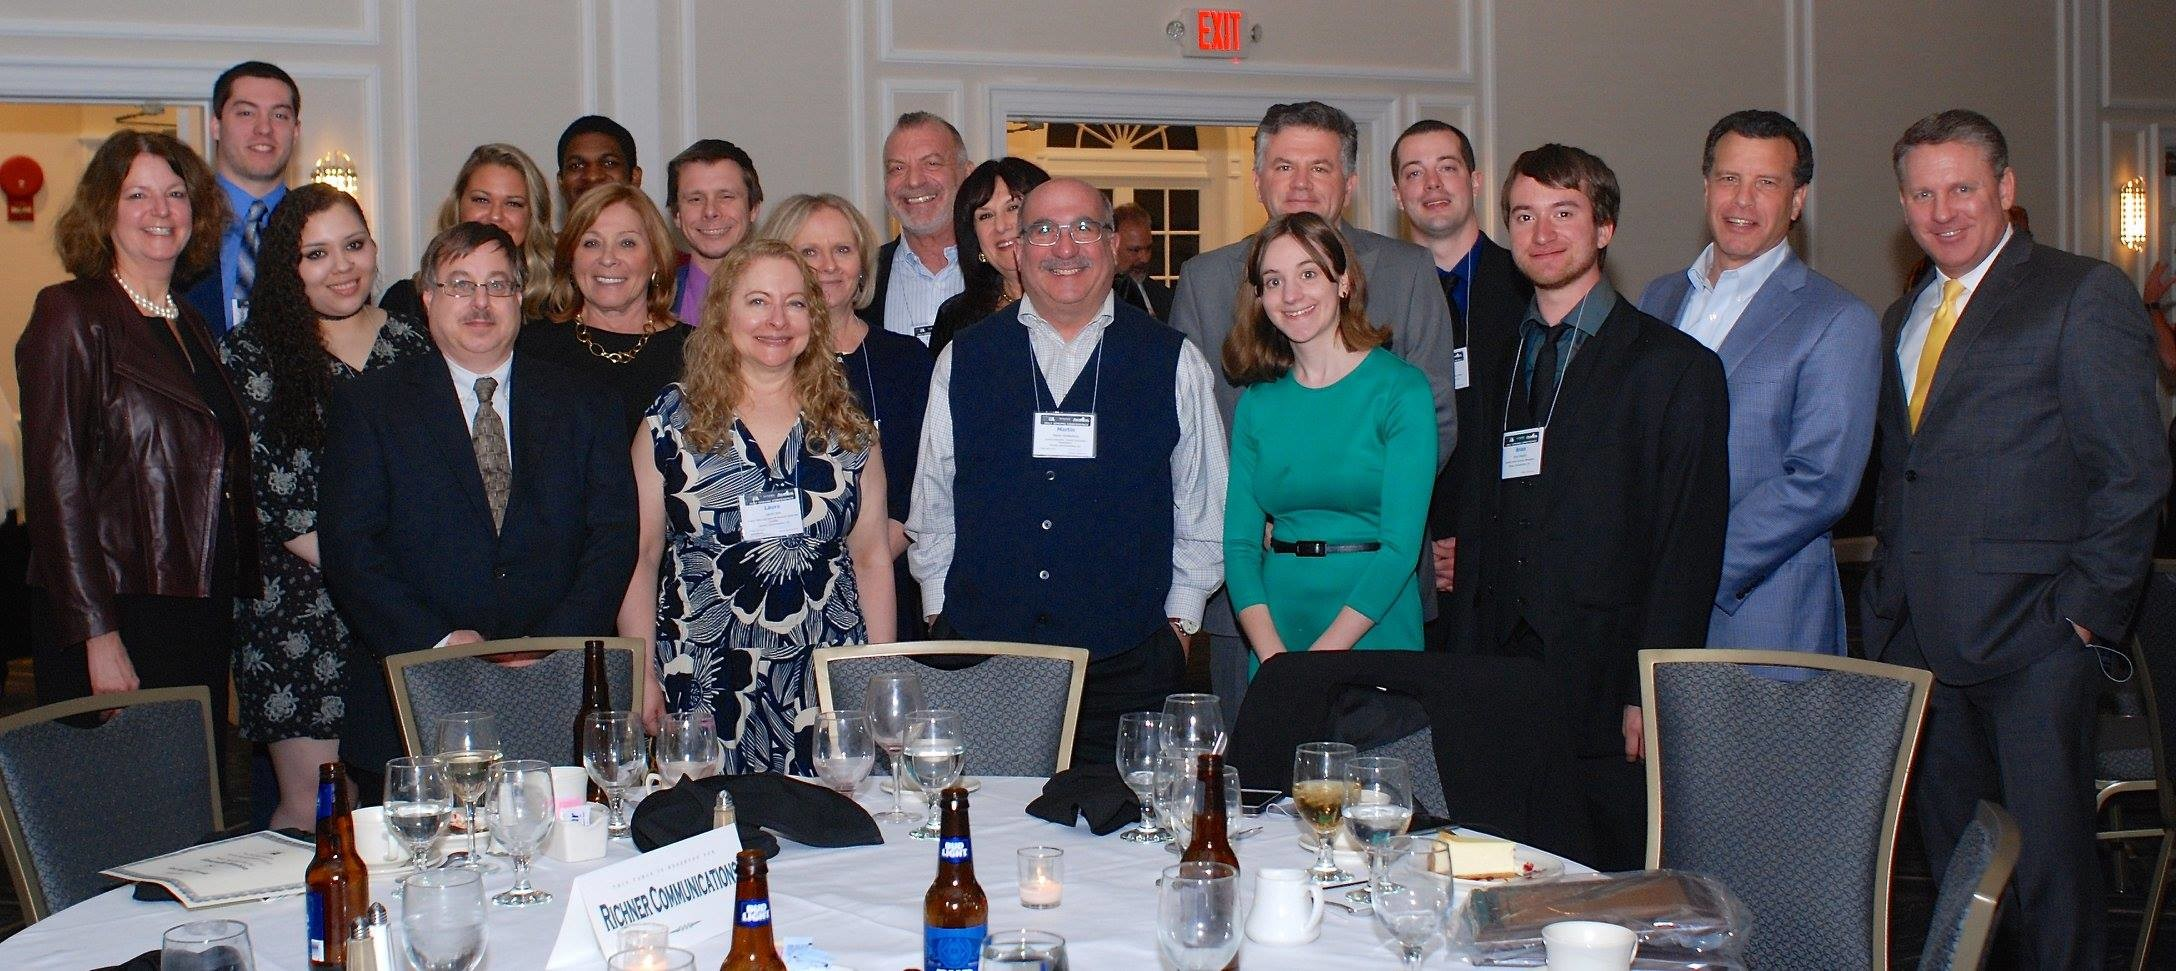 The Herald Community Newspapers crew at the New York Press Association convention in Saratoga Springs, N.Y., last weekend.